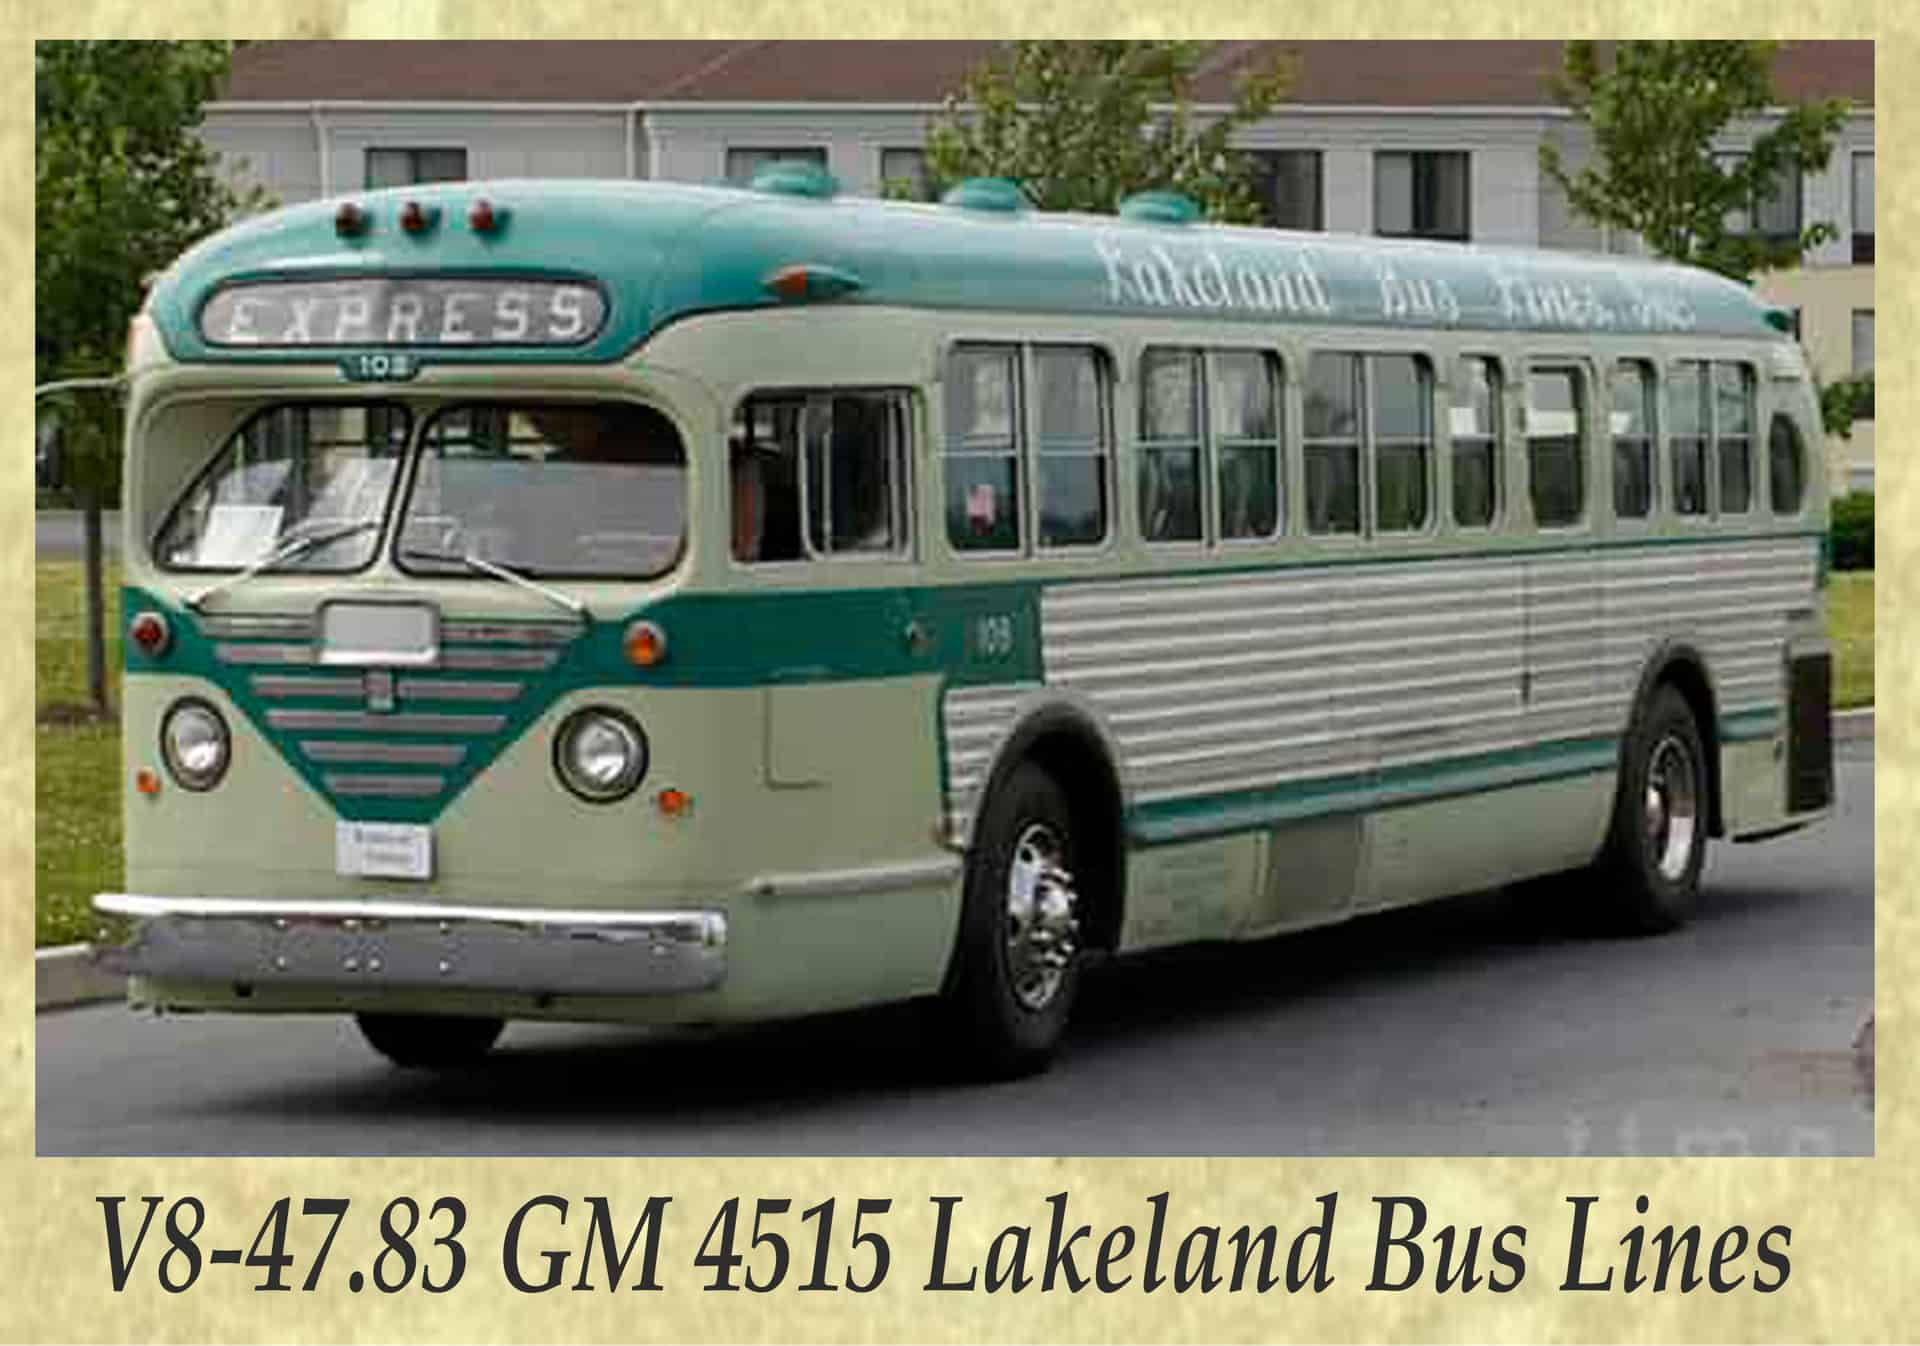 V8-47.83 GM 4515 Lakeland Bus Lines